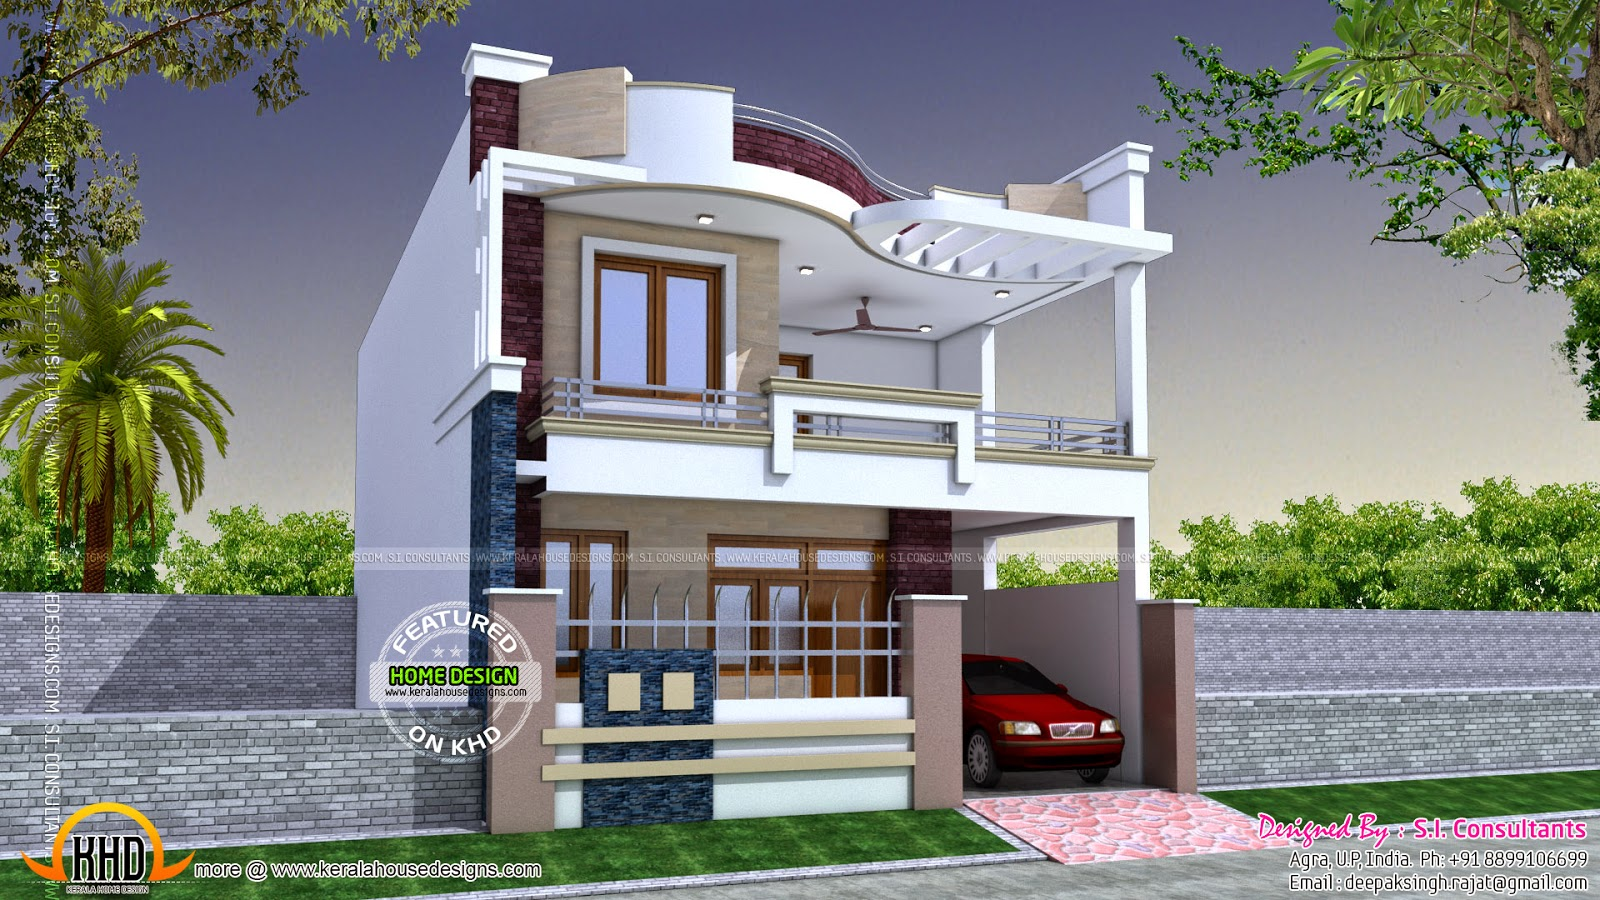 Modern indian home design kerala home design and floor plans Indian home design plans